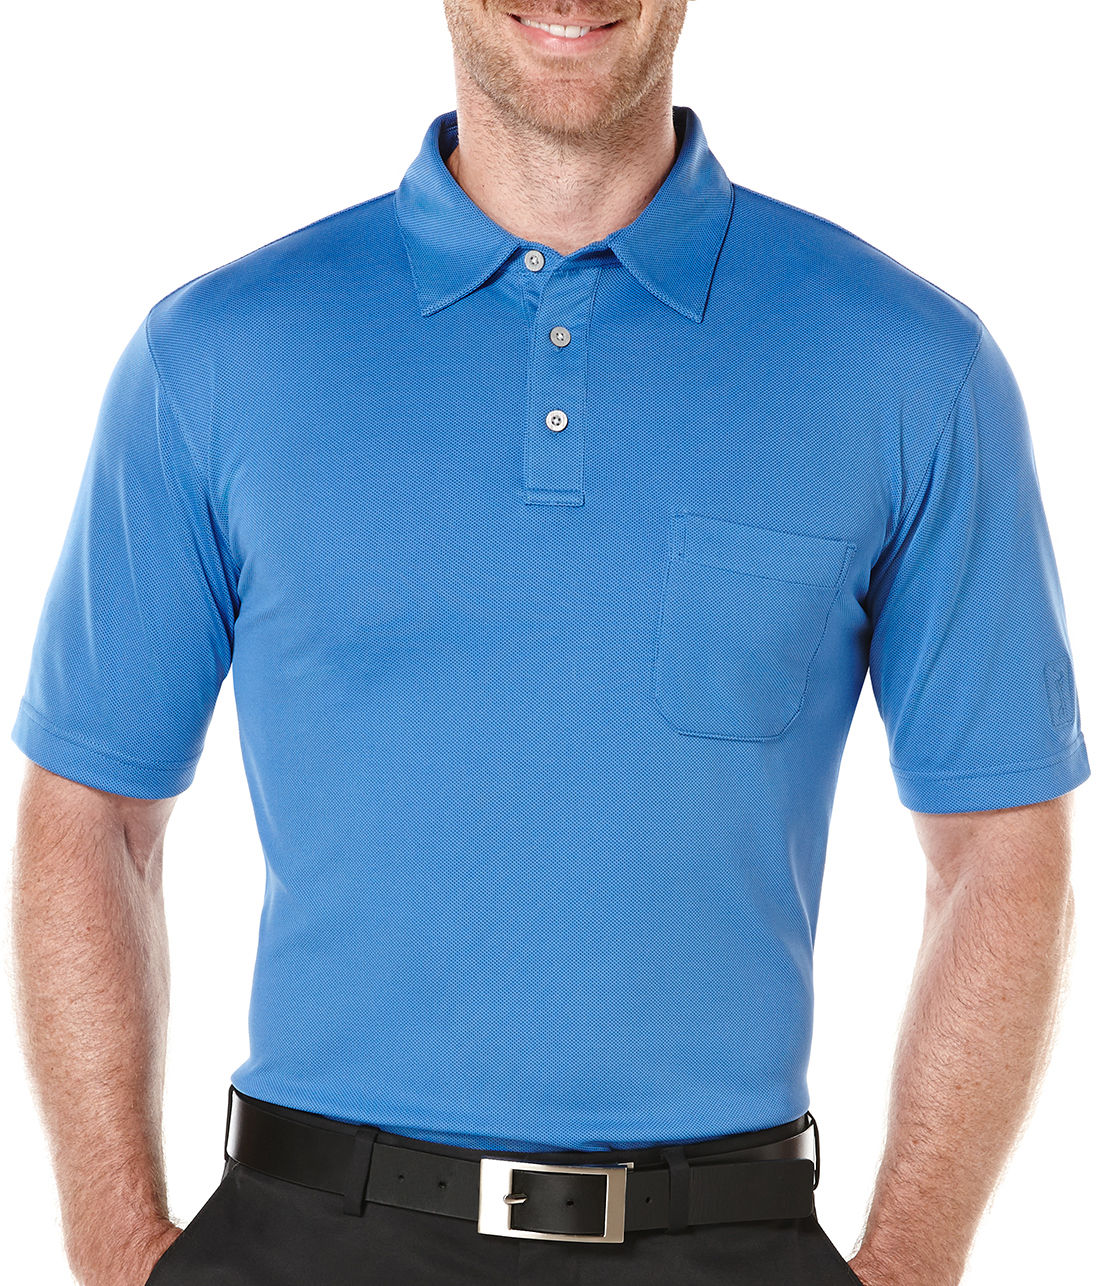 Get THE PLAYERS from the Official Store of THE PLAYERS Championship. Buy all THE PLAYERS Championship apparel and merchandise for men, women, and kids.